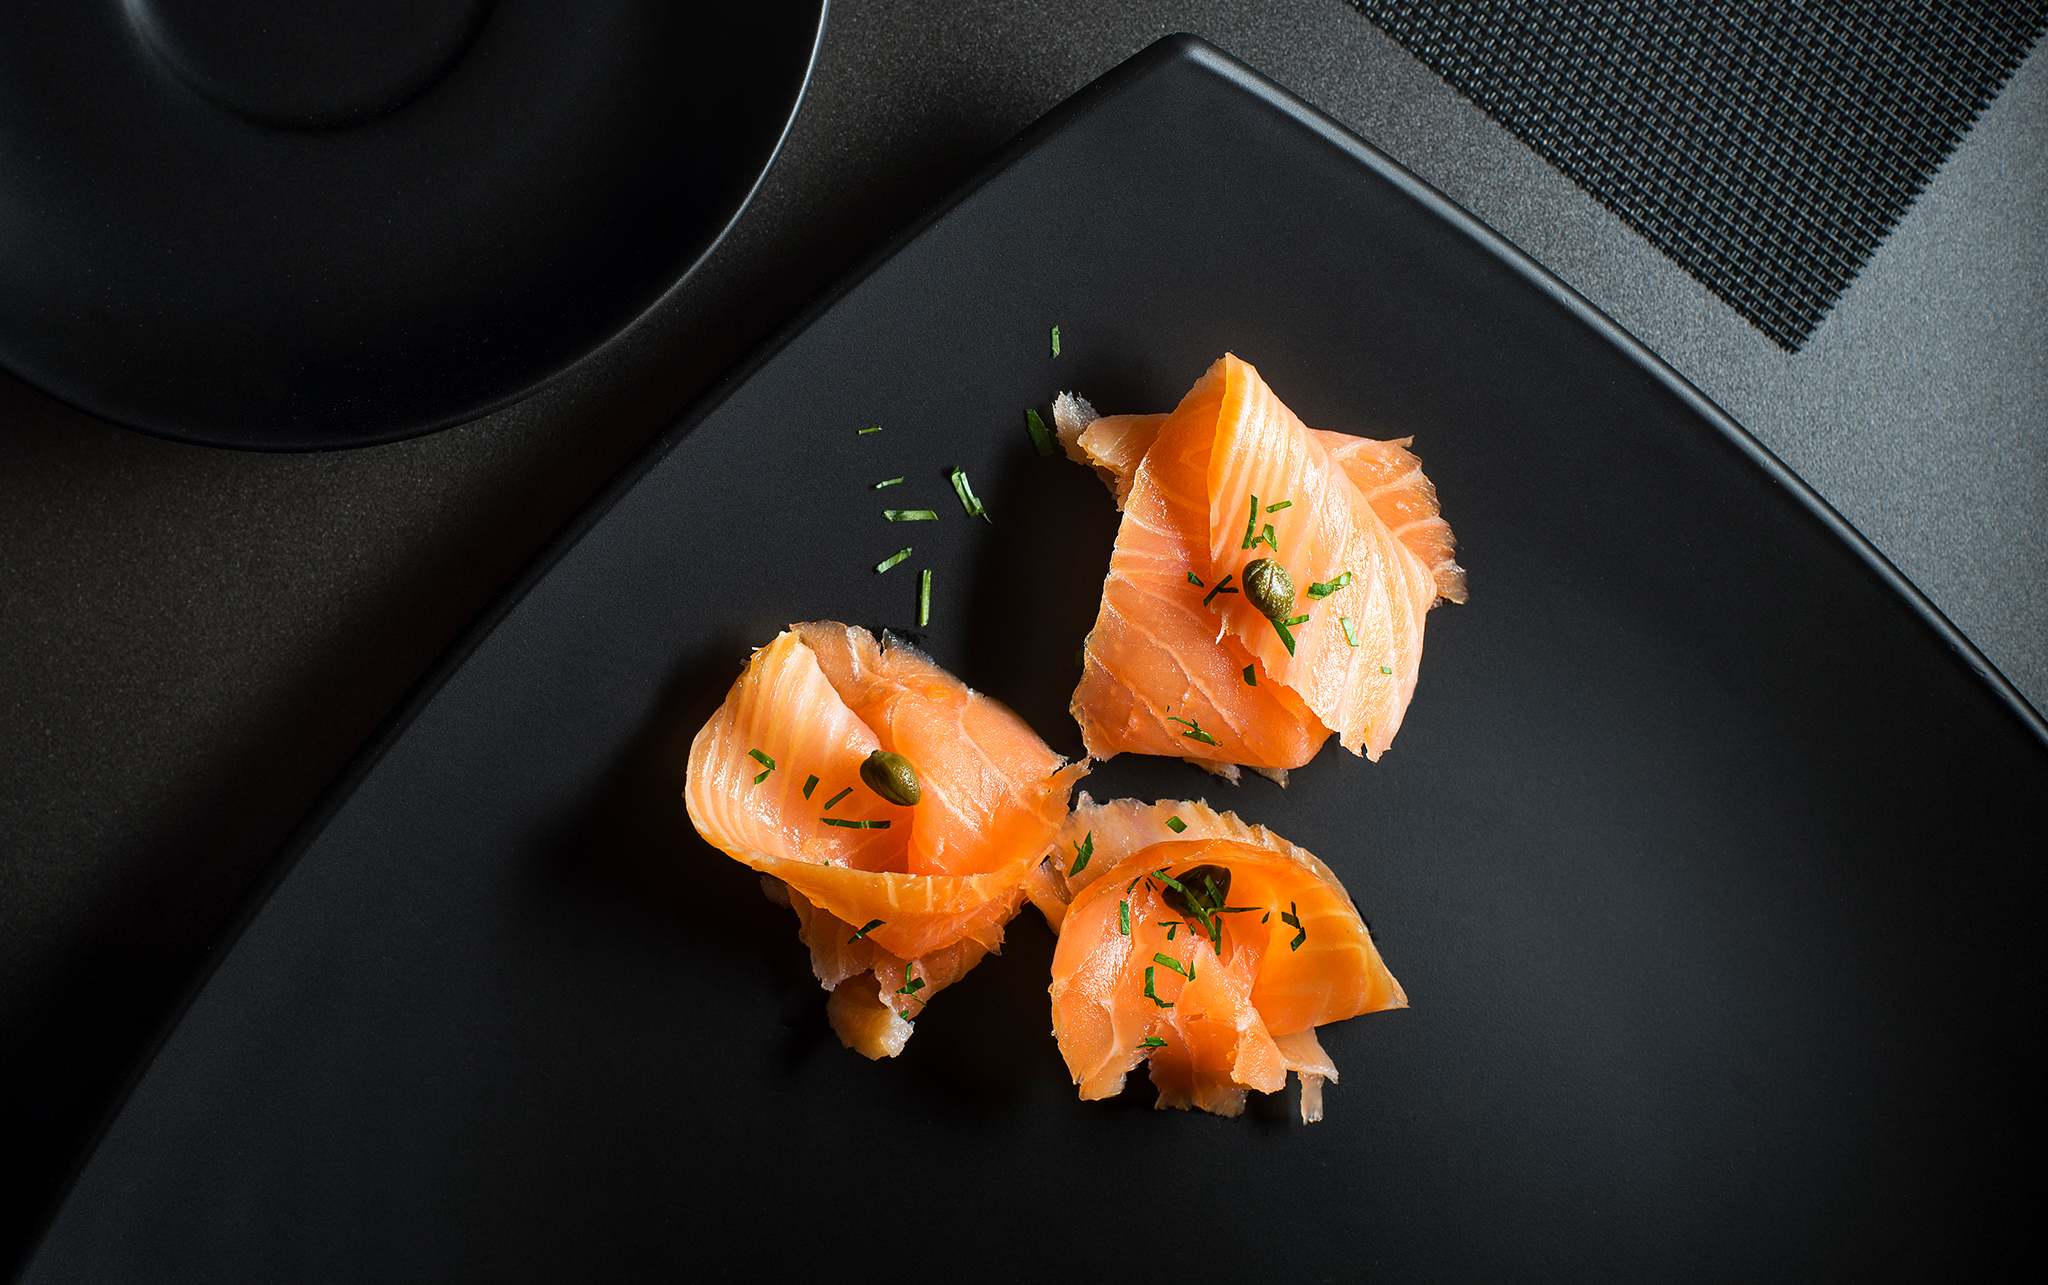 risks of eating lox